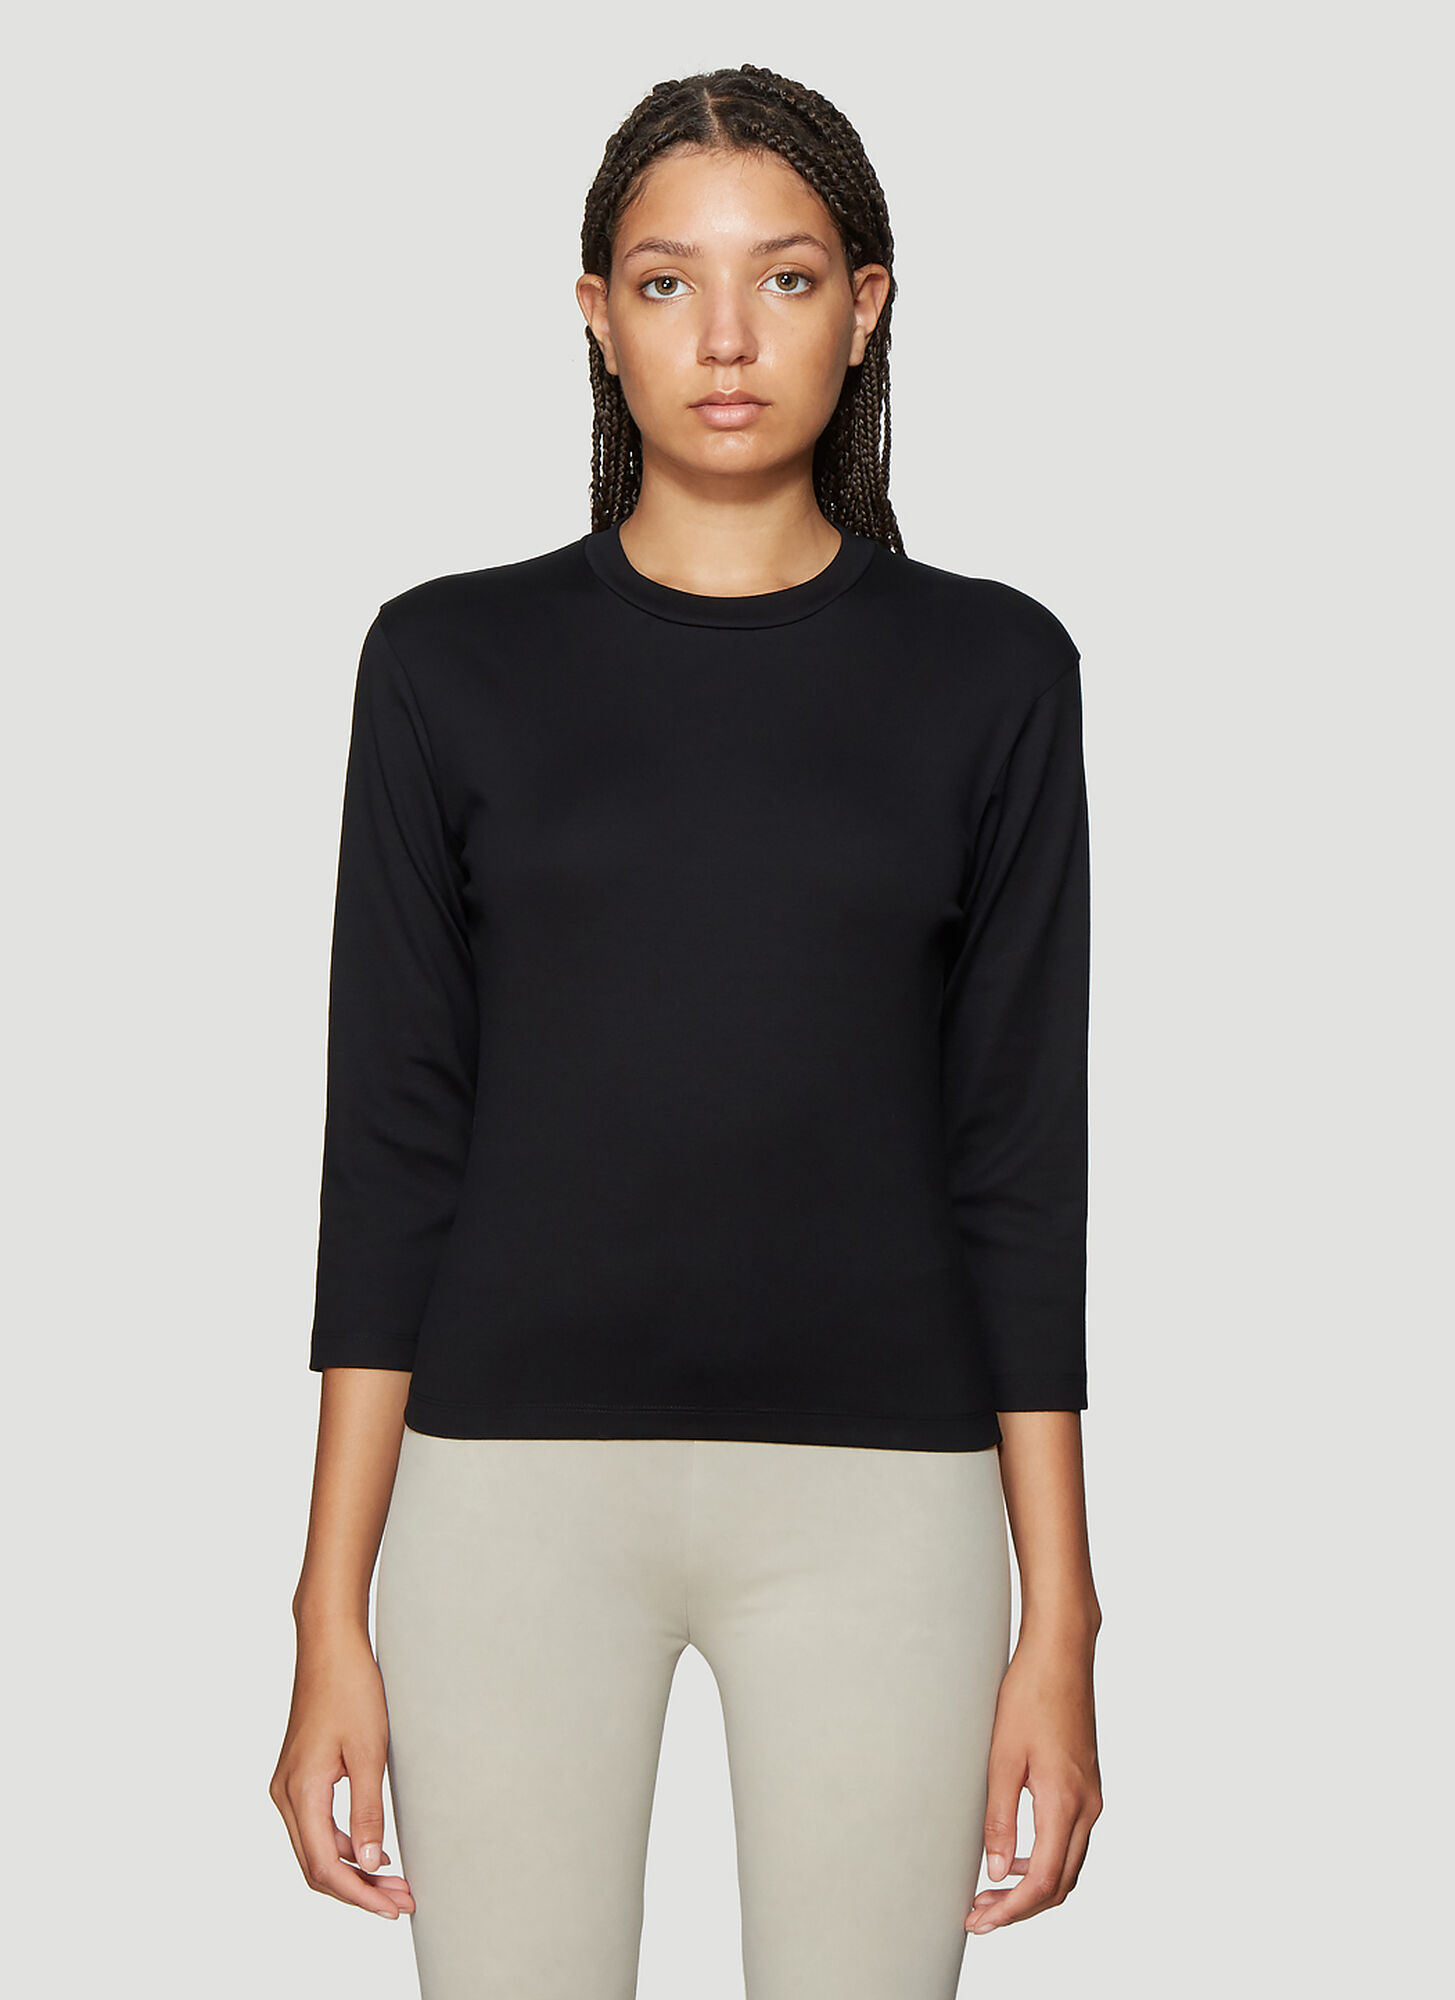 Roni Ilan Three Quarter Sleeve Top in Black